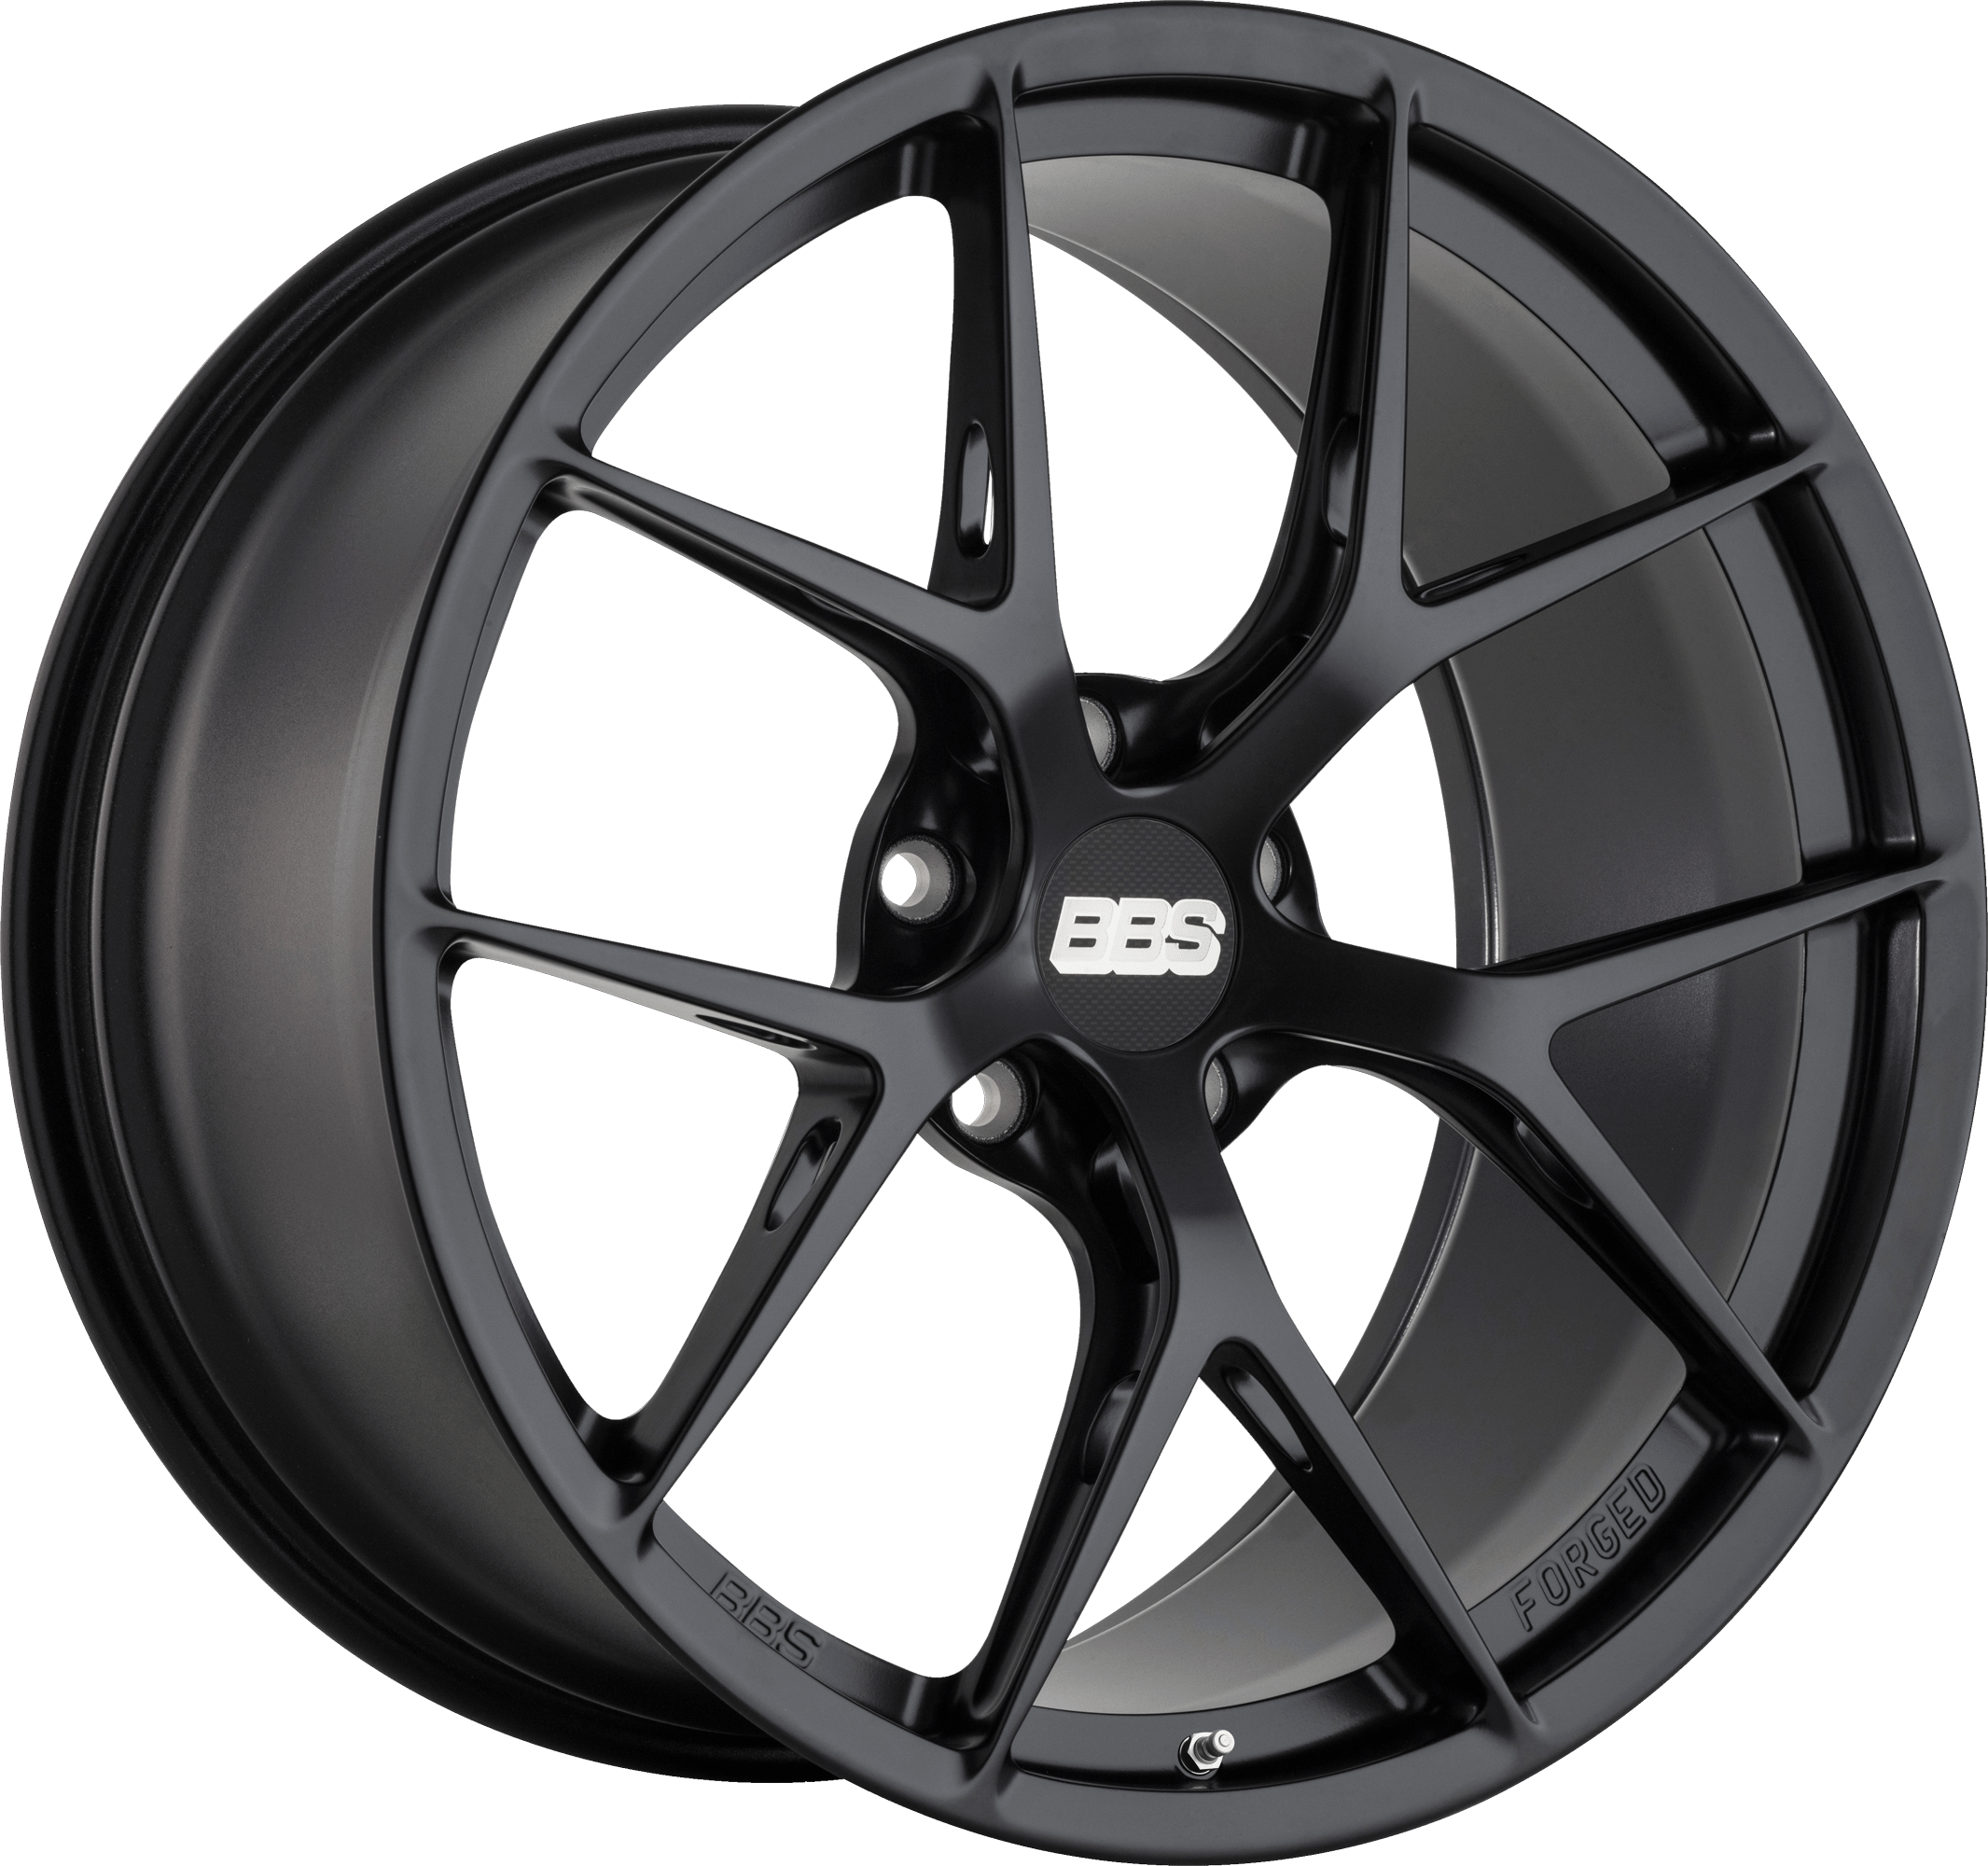 BBS - FI-R (Forged Individual) with Speed Holes (Satin Black)